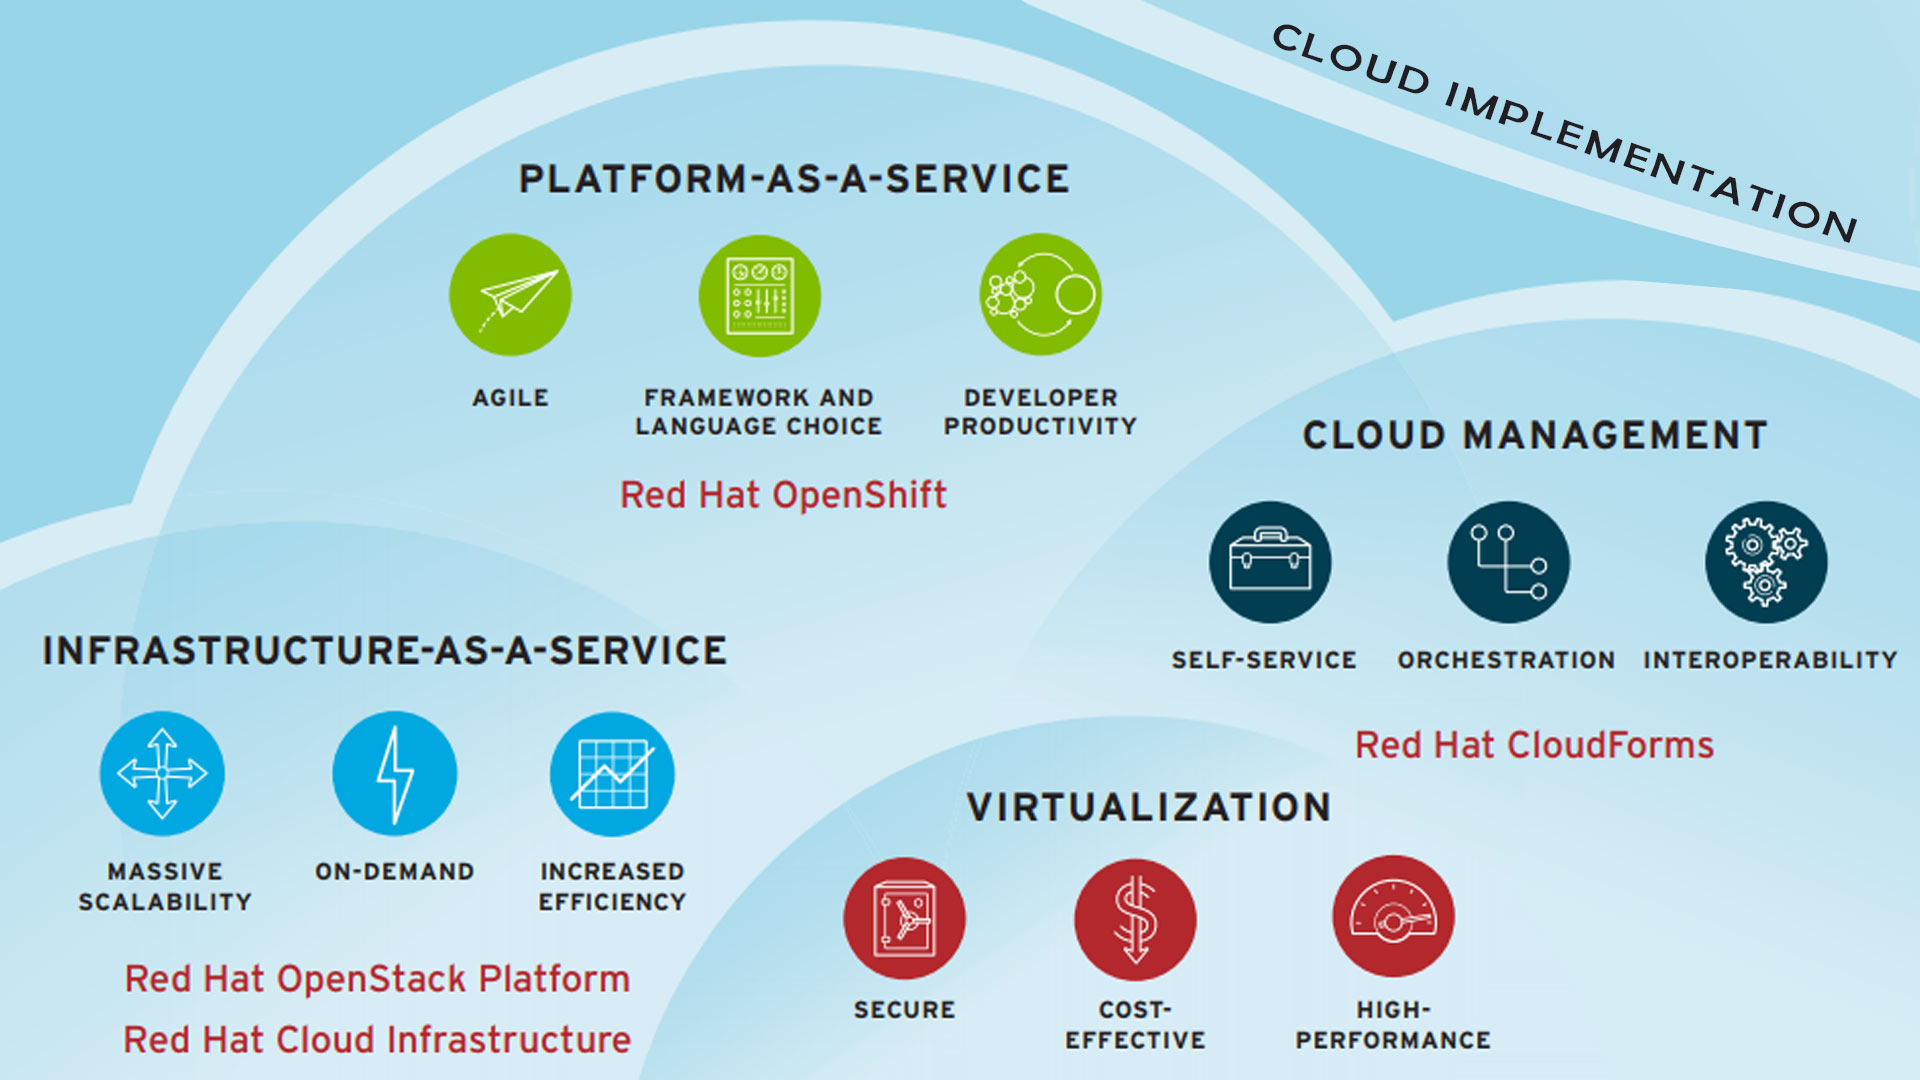 La tecnologia di Red Hat nella Cloud Implementation